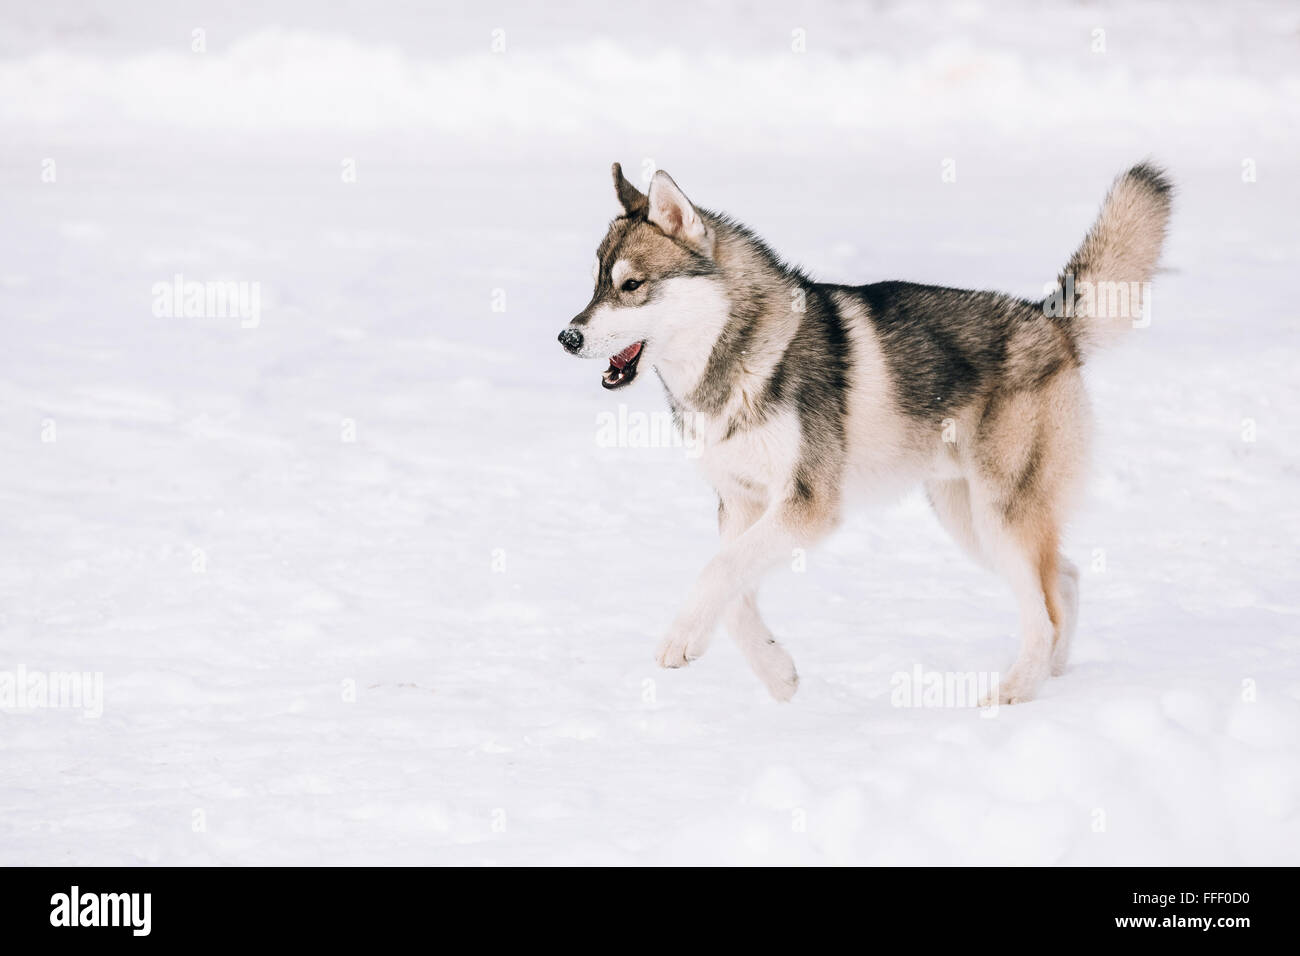 Young Husky dog play and running outdoor in snow, winter season. Sunny day - Stock Image